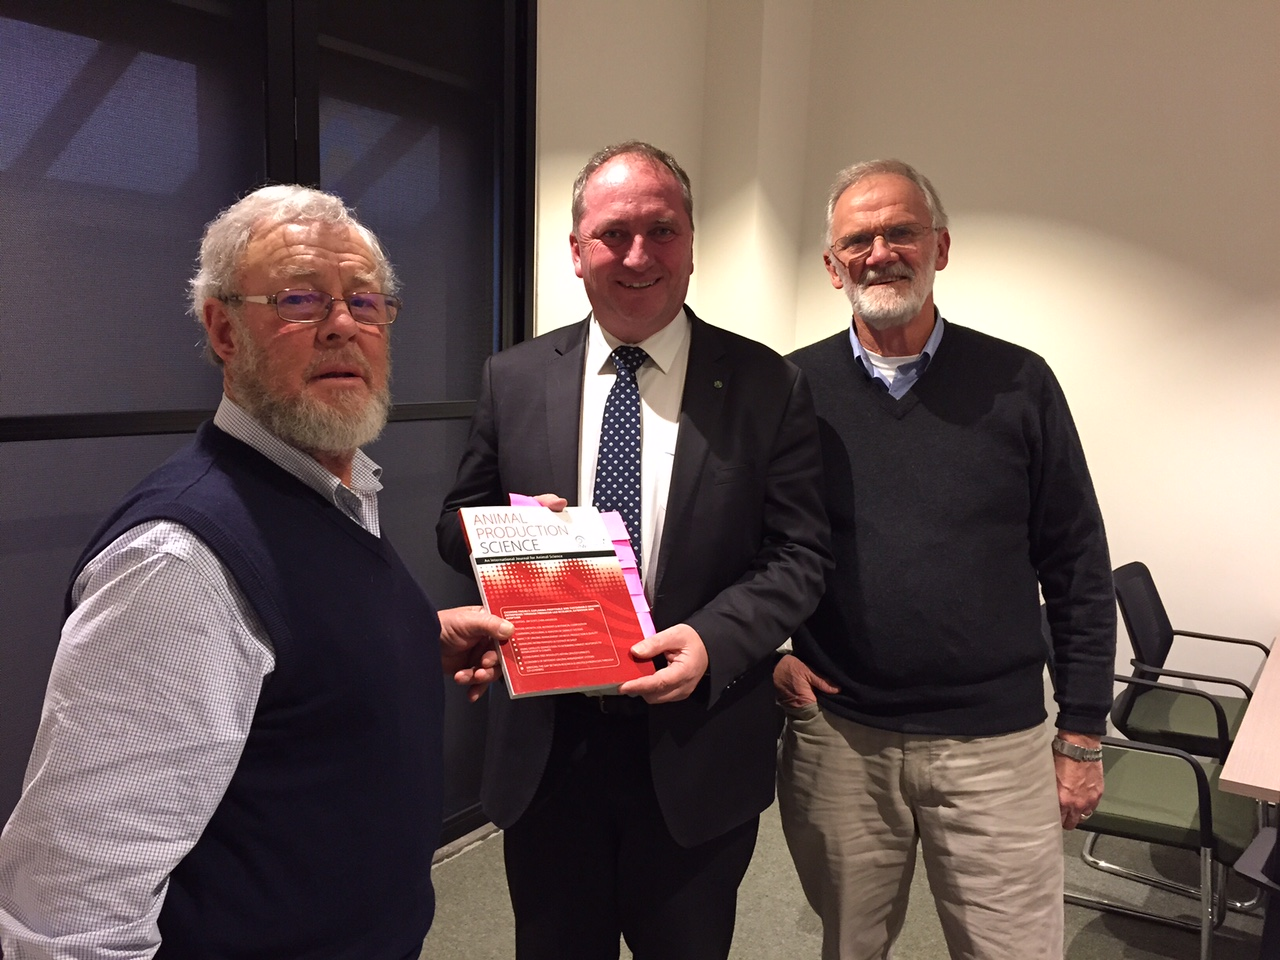 Terry Coventry (L) and Jim Scott (R) presenting Minister for Agriculture and Water Resources, Barnaby Joyce MP, with a copy of the published journal papers from the Cicerone Project